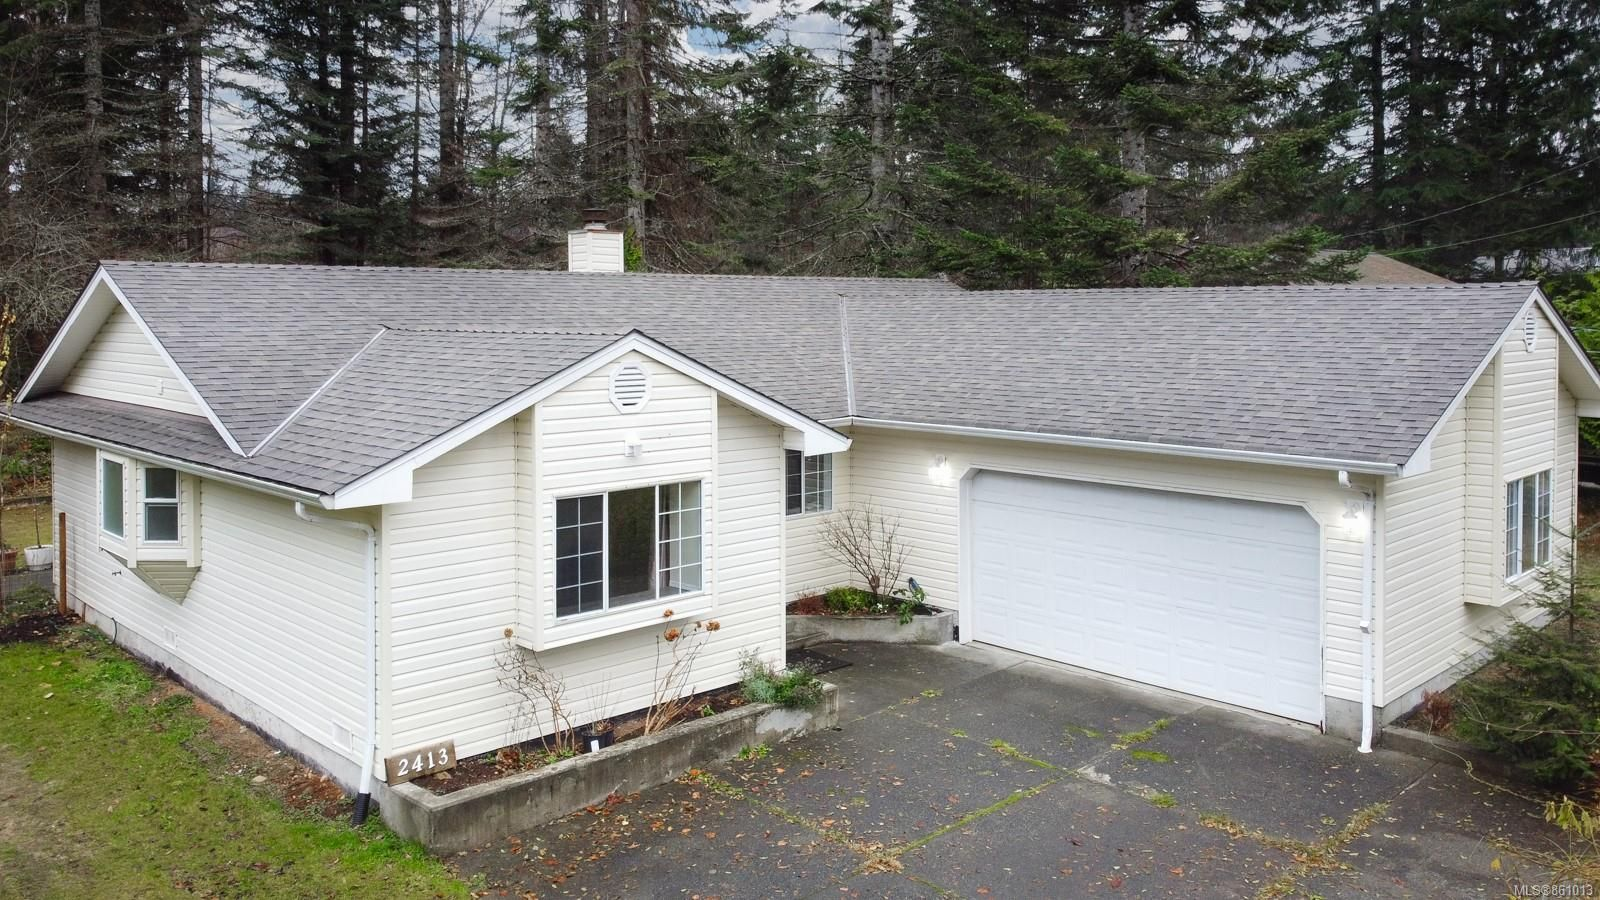 Main Photo: 2413 Catherwood Rd in : CV Merville Black Creek House for sale (Comox Valley)  : MLS®# 861013